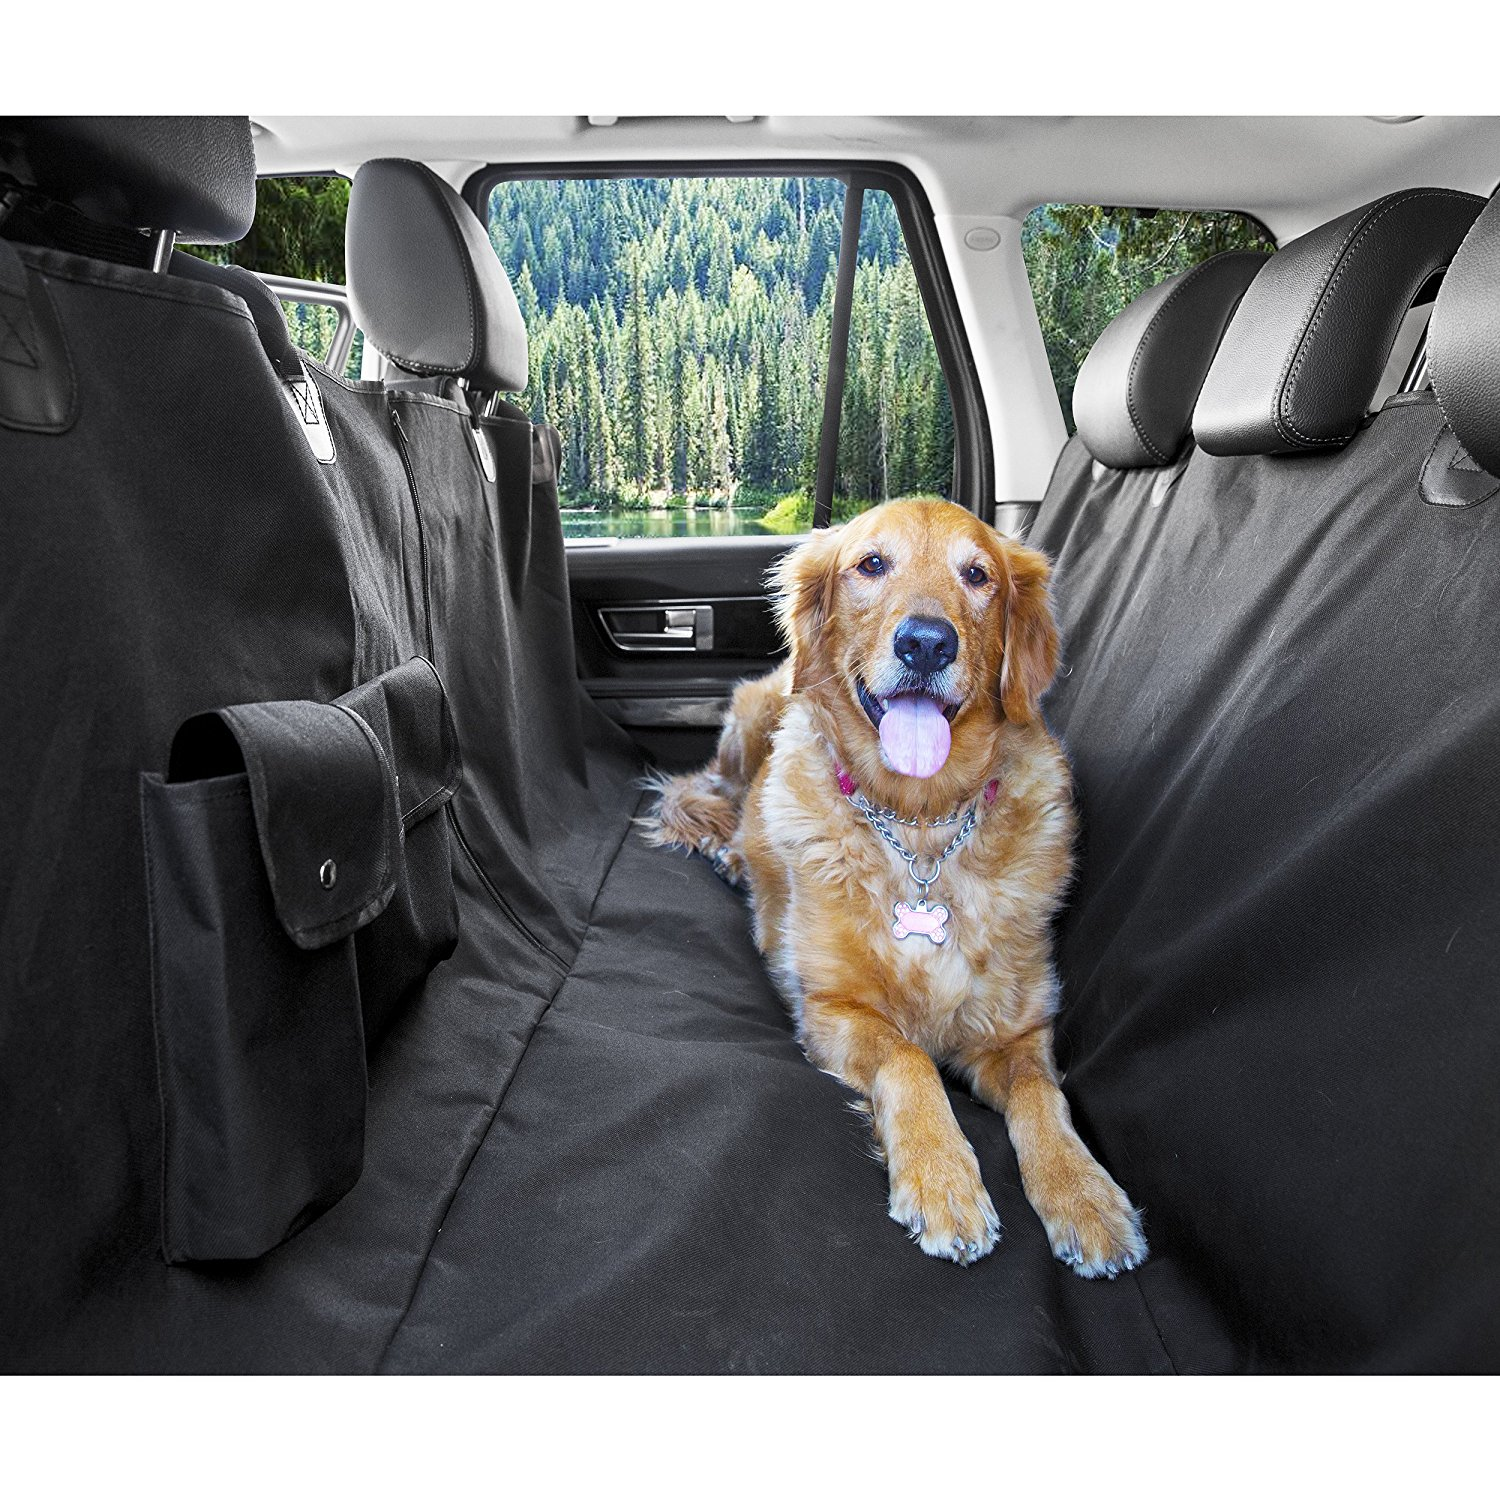 mdstop new multi function car pet seat cover with pockets zipper hammock rear back seat dog protector mat for cars trucks suvs in dog carriers from home     mdstop new multi function car pet seat cover with pockets zipper      rh   aliexpress